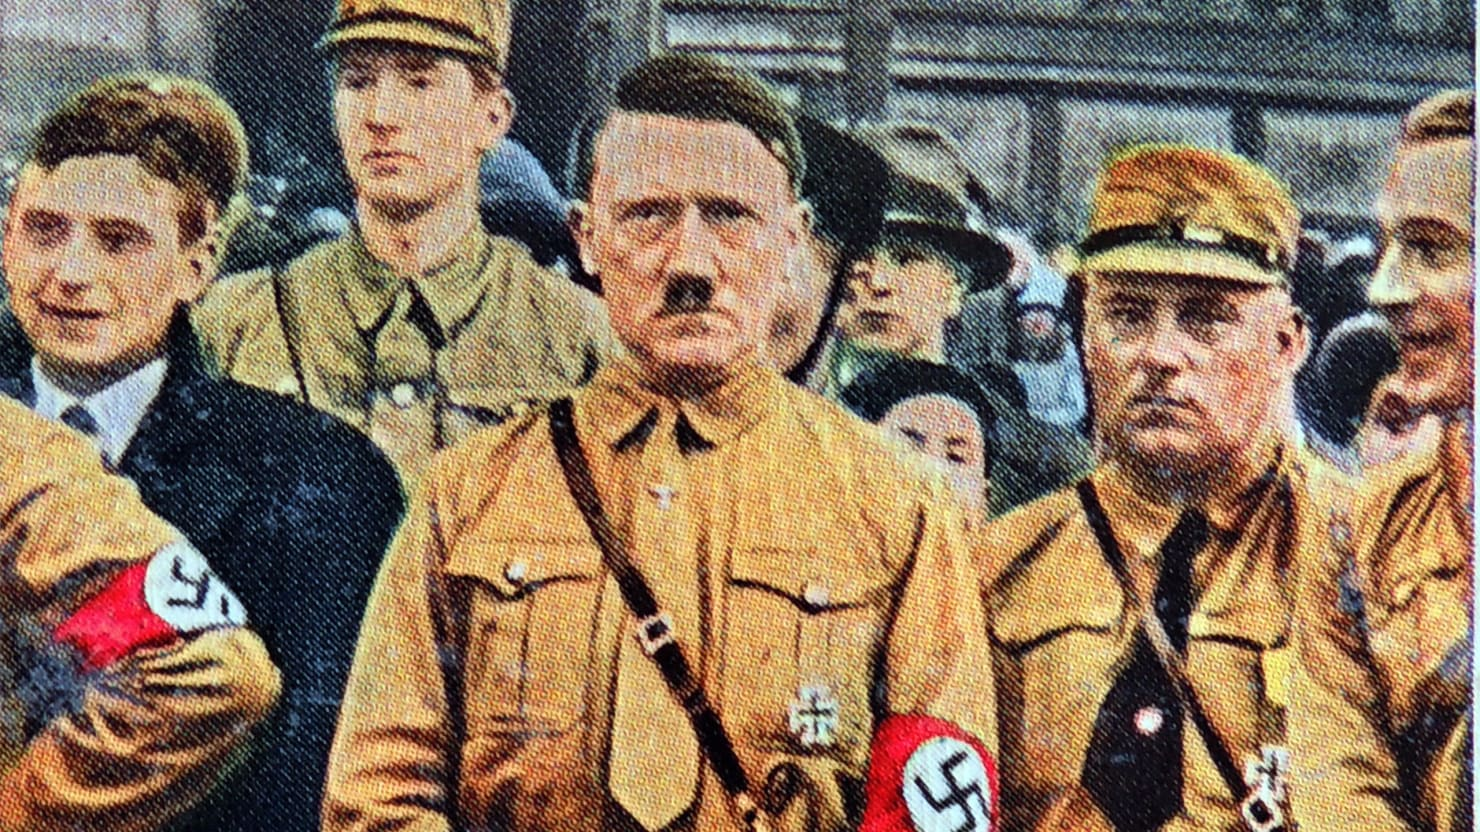 The 20th-Century Dictator Most Idolized by Hitler